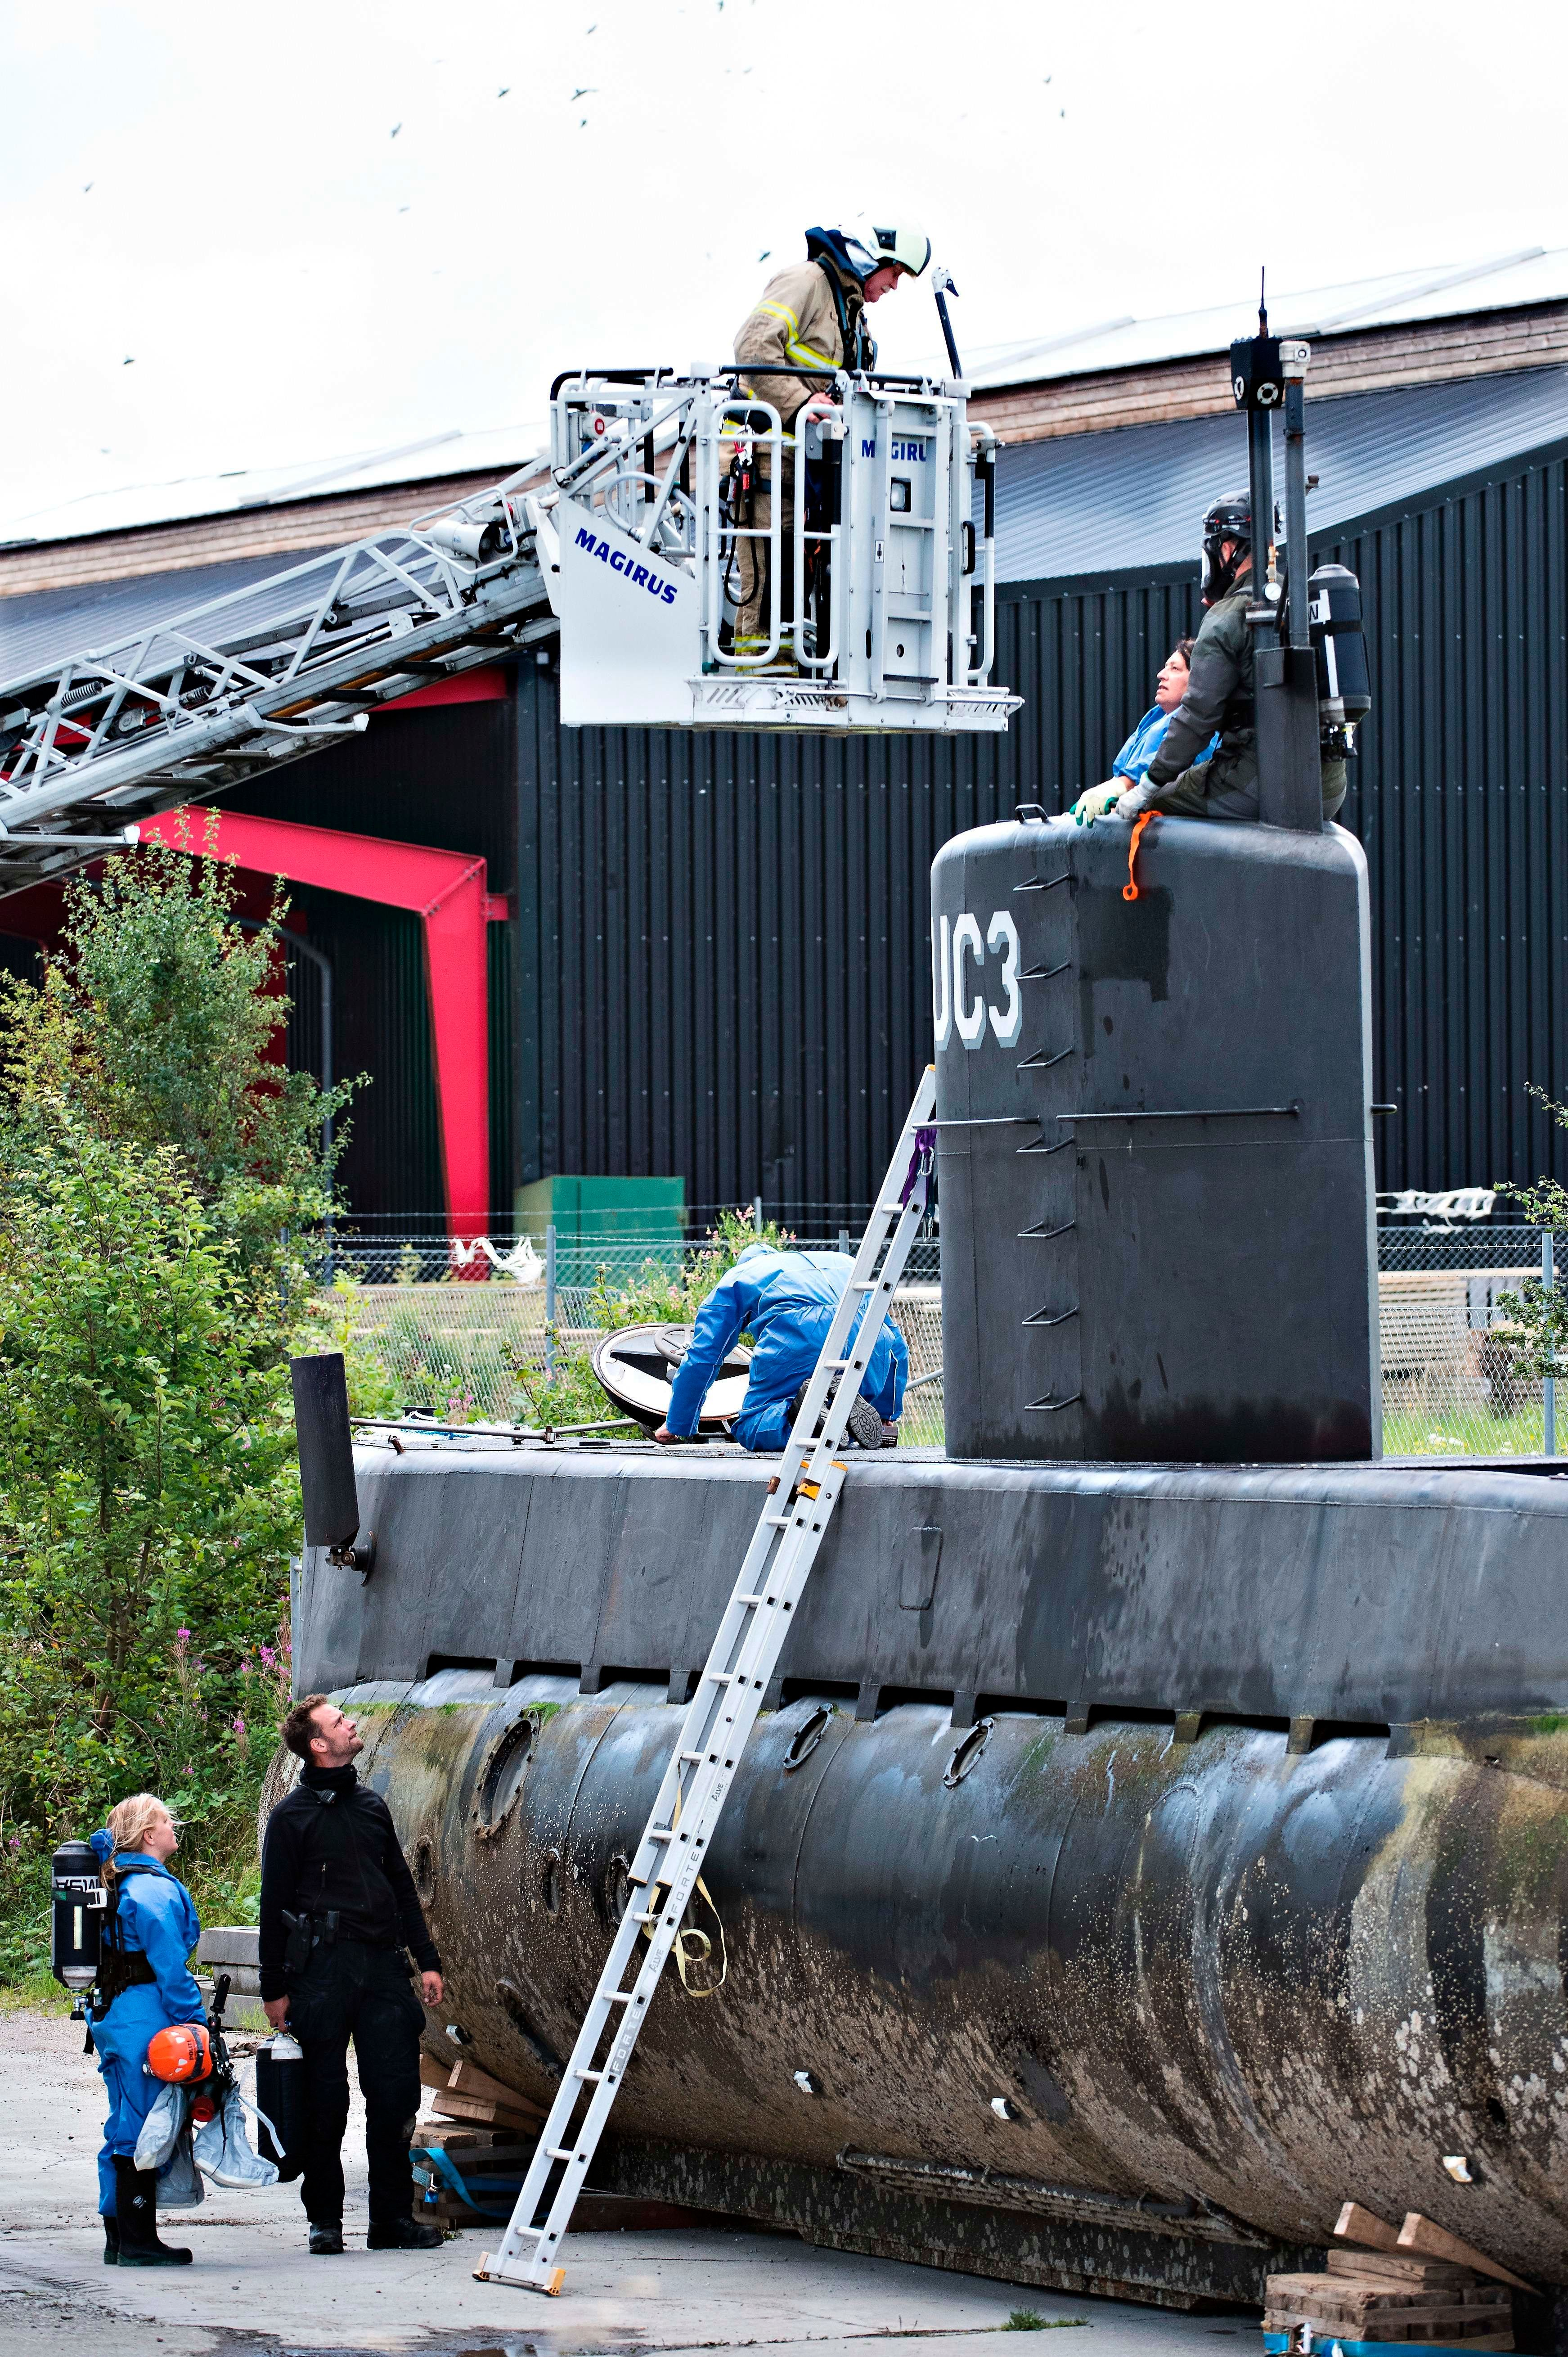 Police technicians investigate the rescued submarine on Aug. 13, 2017.